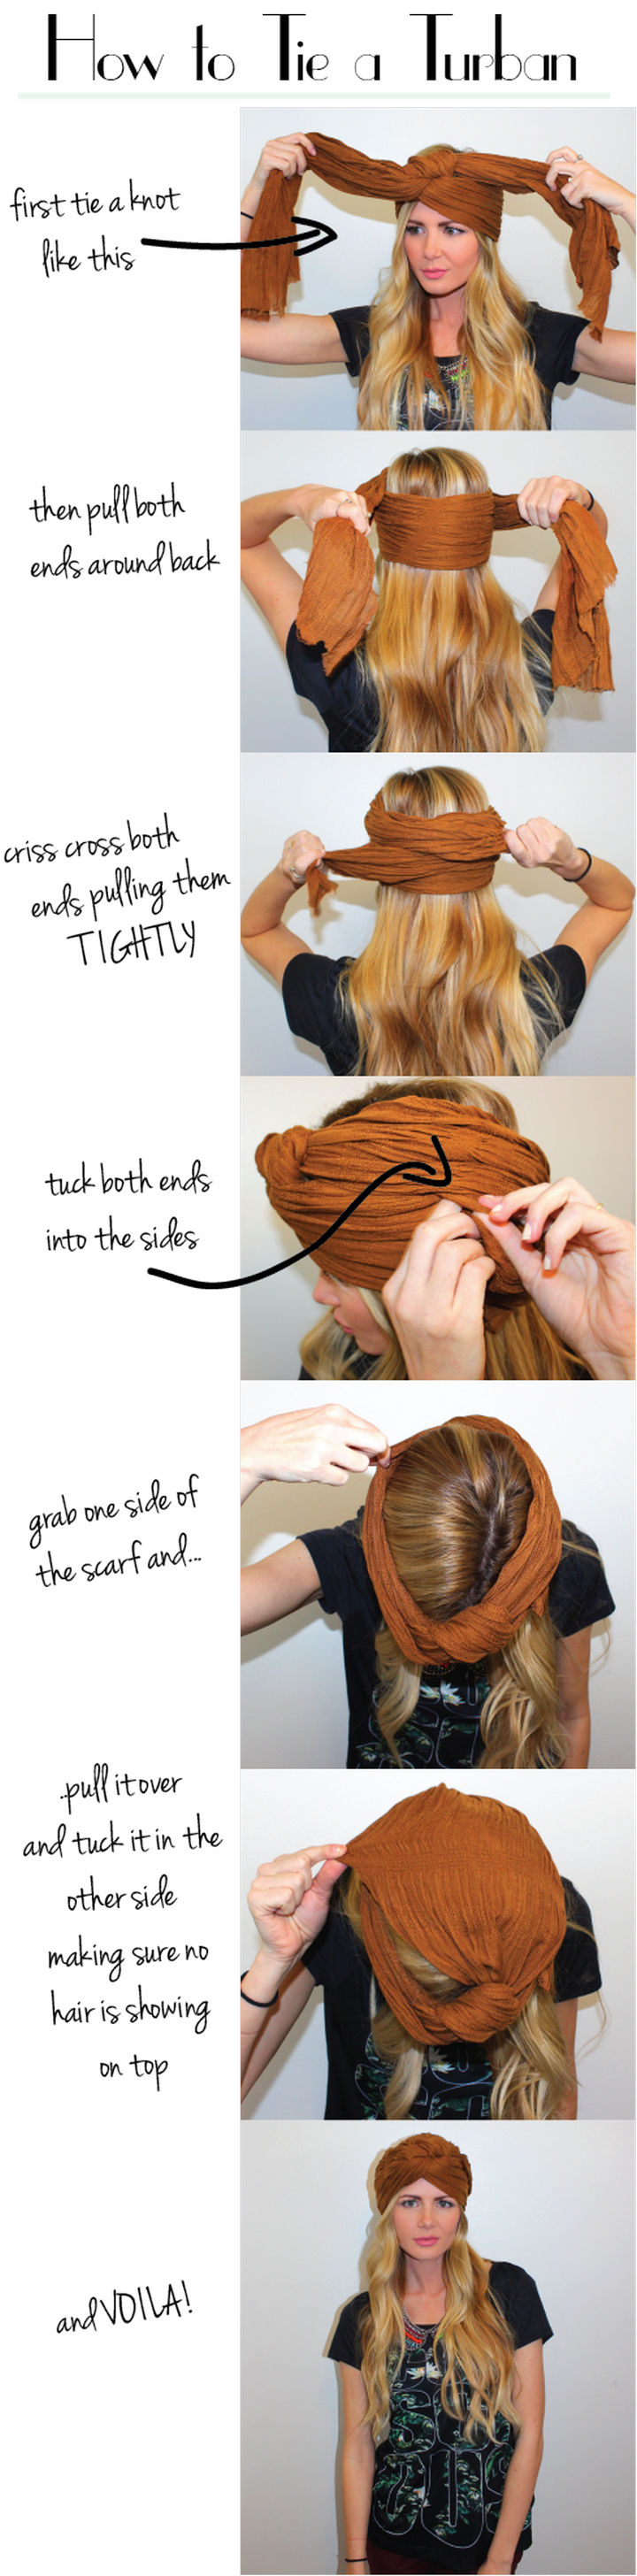 25 Lazy Girl Hair Hacks - Cover up a bad hair day by rockin' a turban.